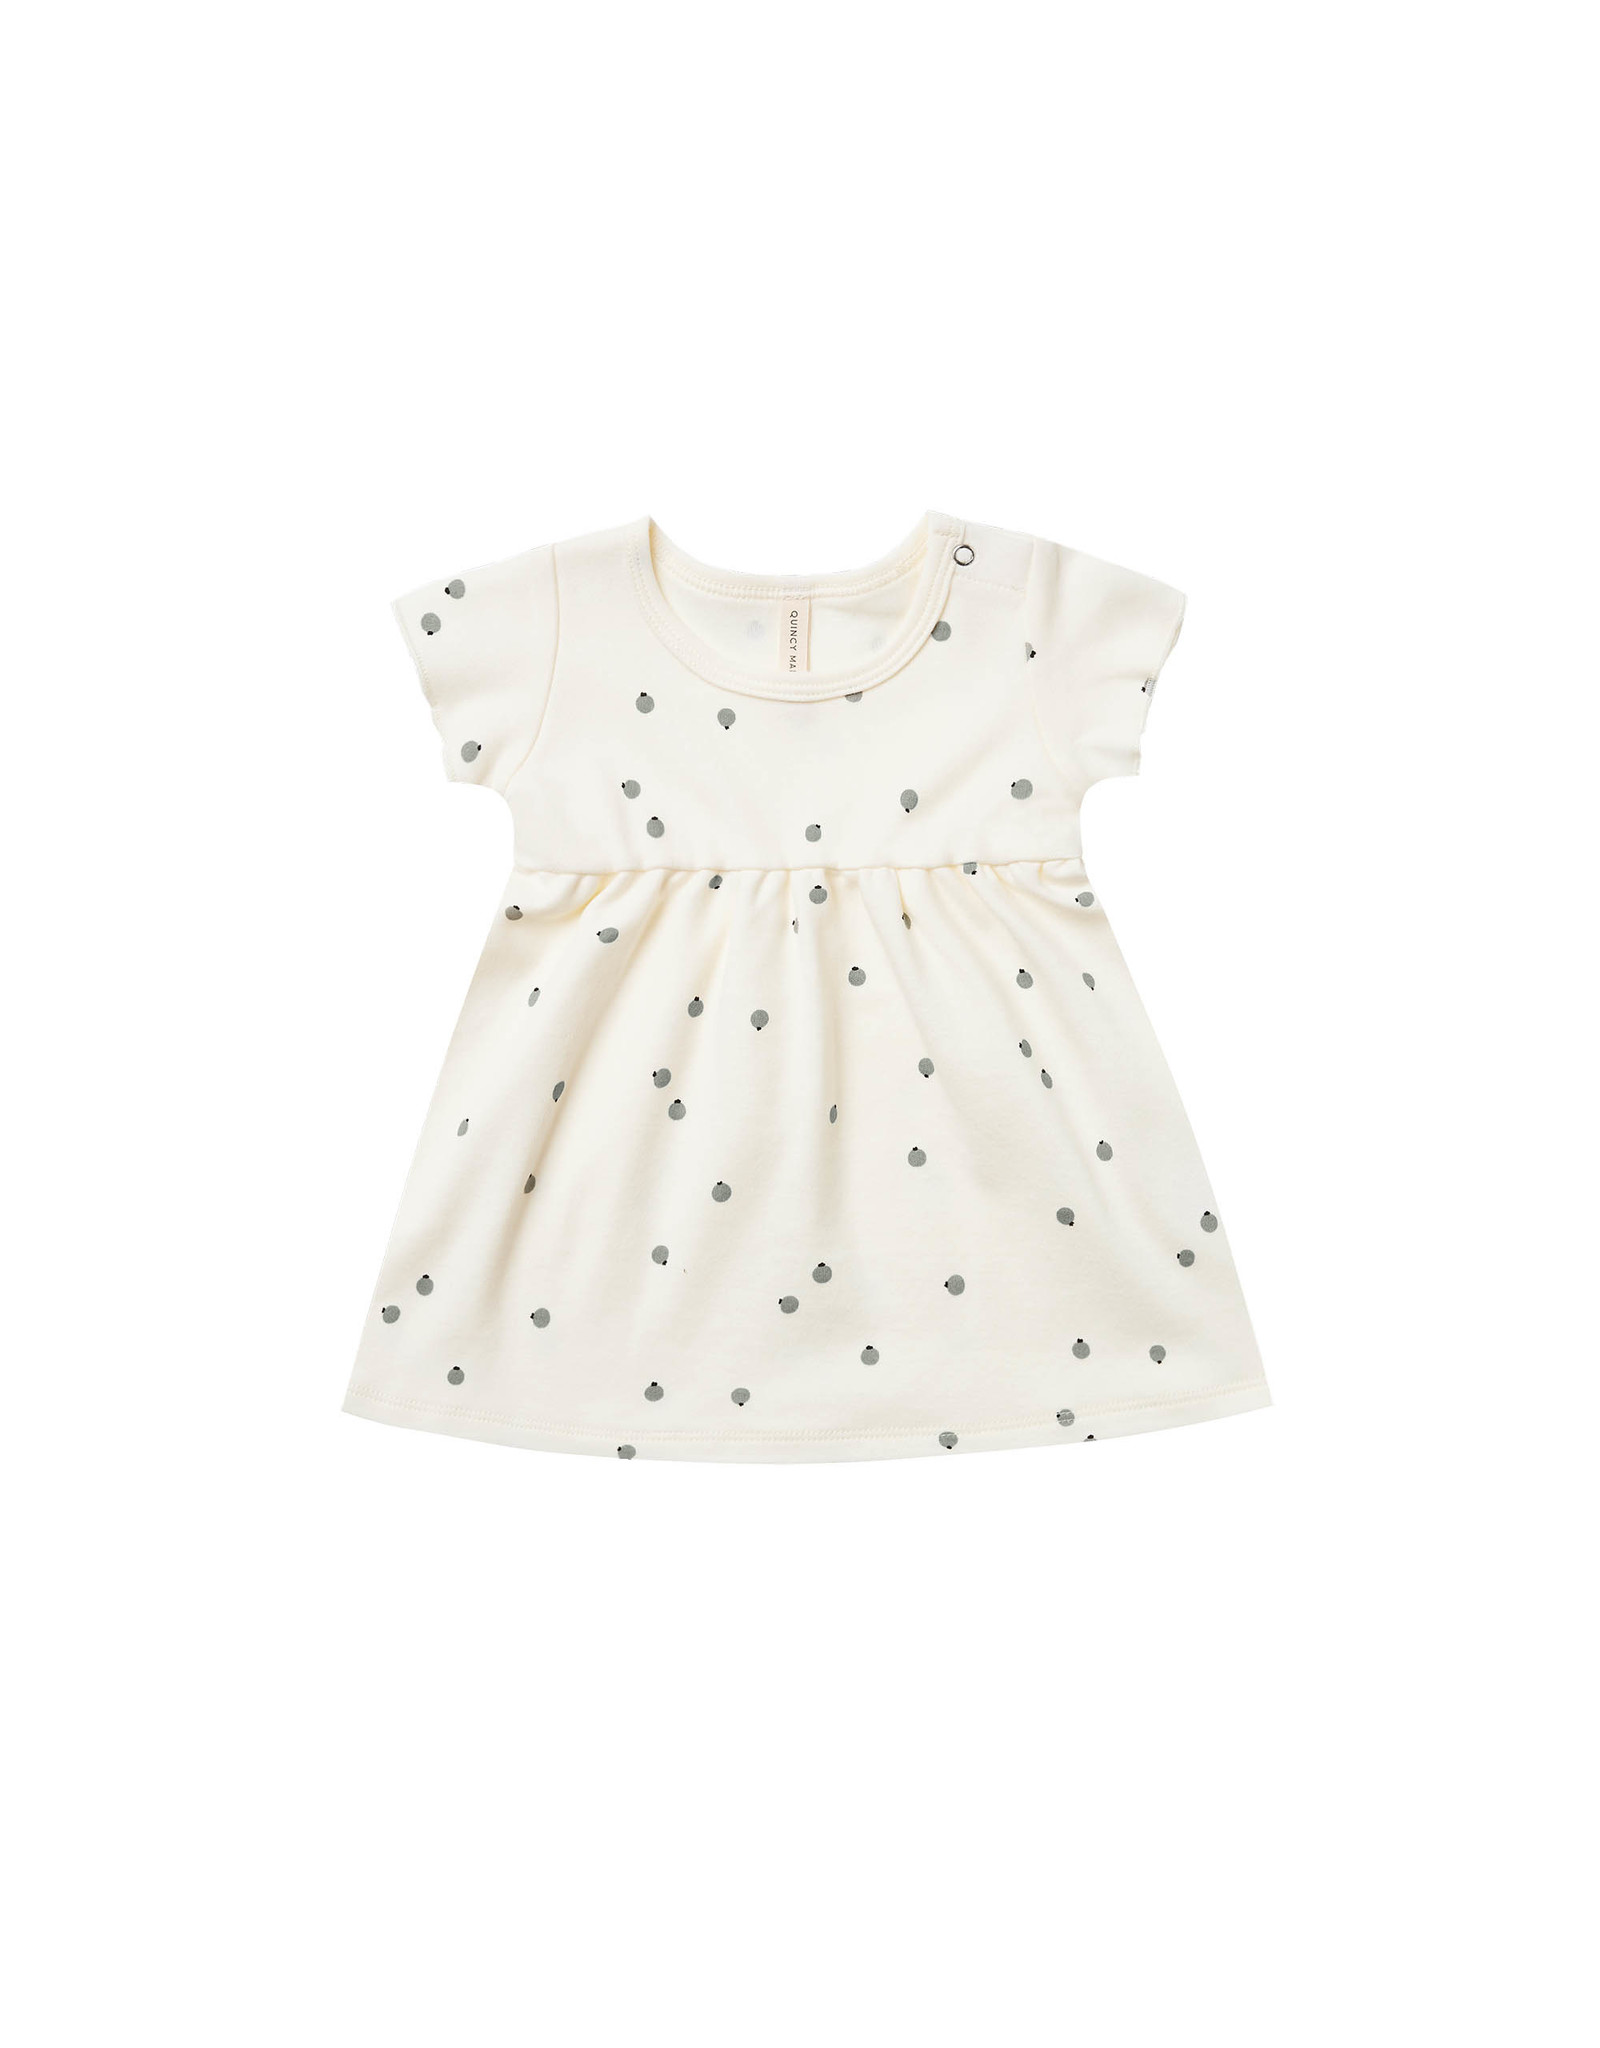 Quincy Mae Short Sleeve Baby Dress